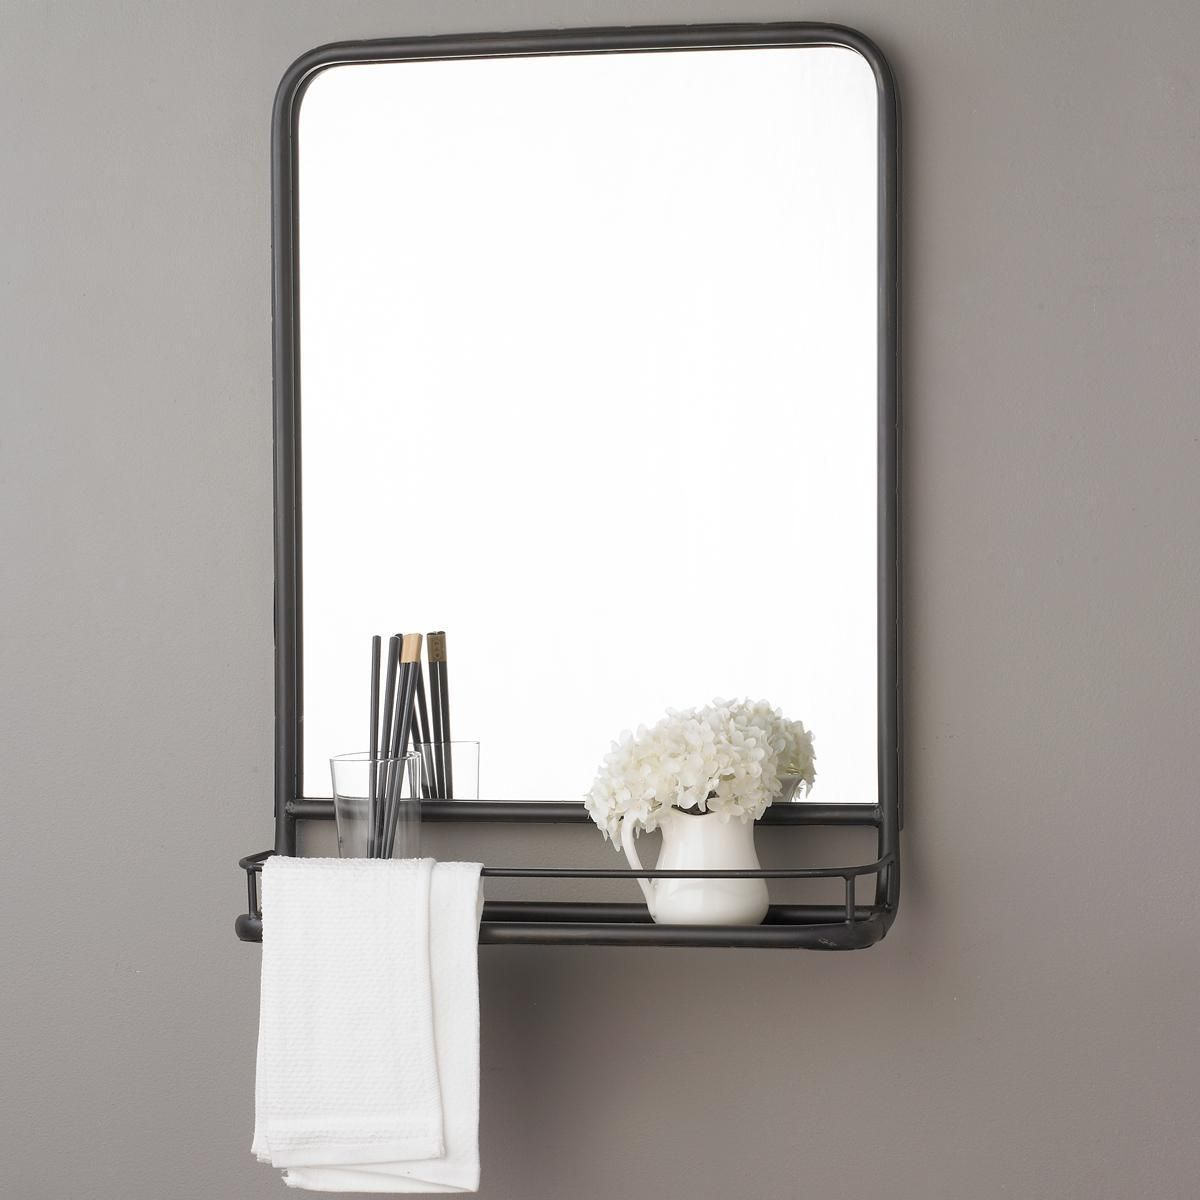 Metal Wall Mirror With Shelf Metal Mirror With Shelf Small Metal Mirror Shelves